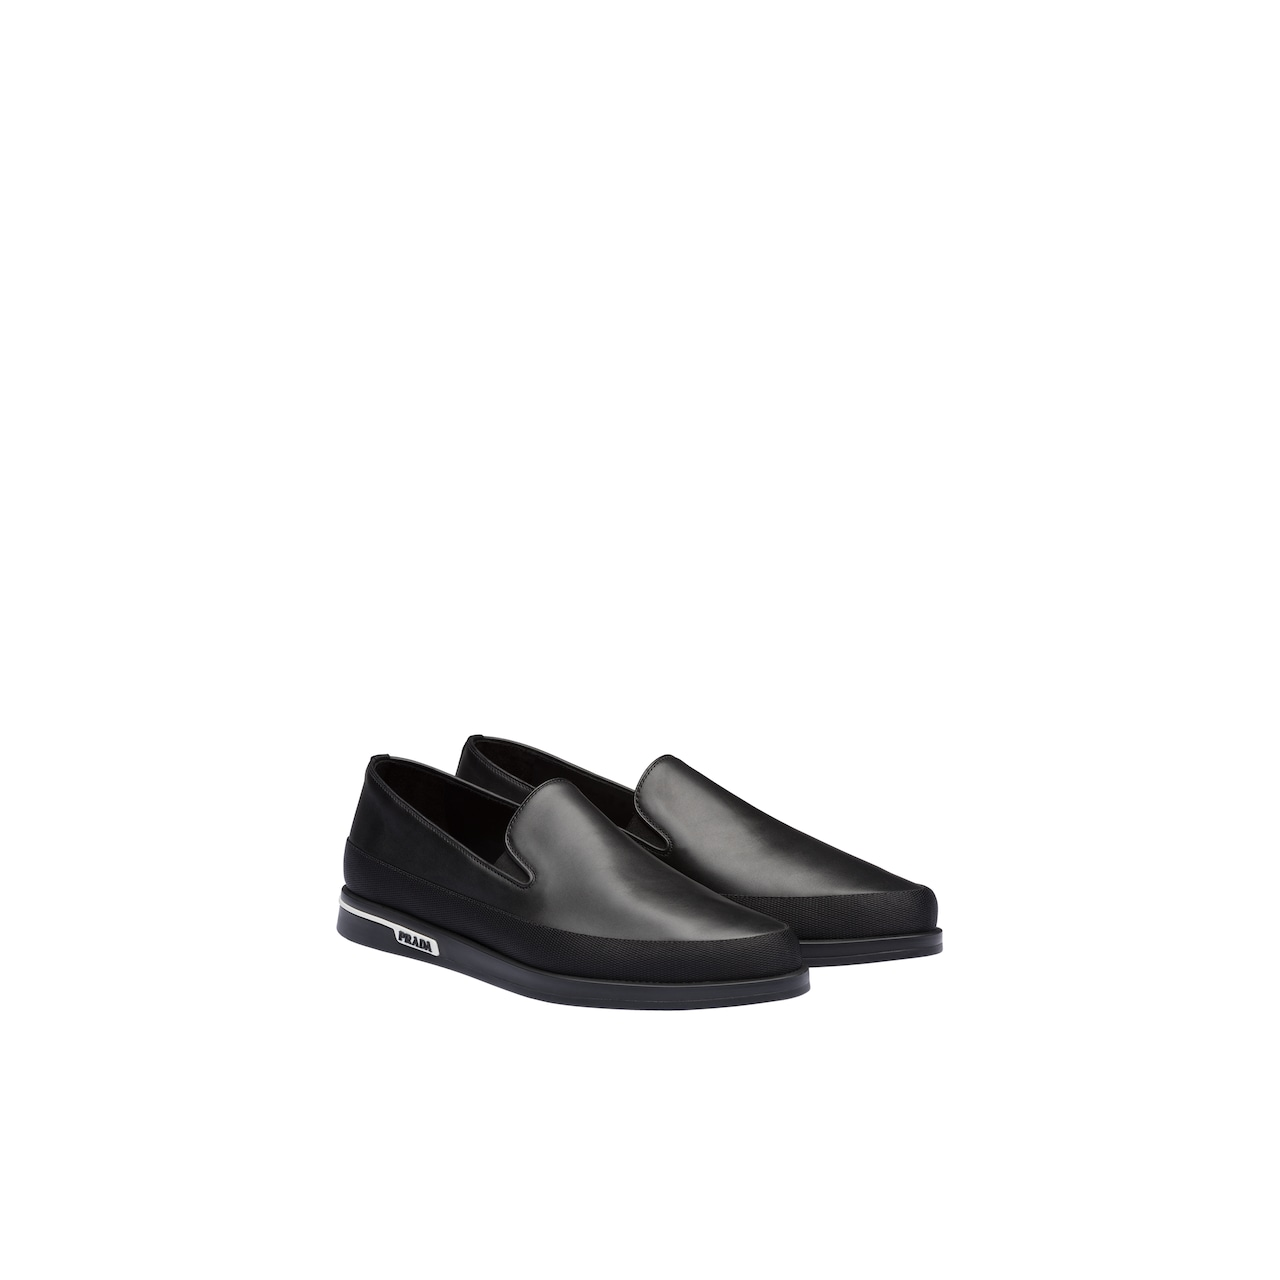 Prada Leather slip-on sneakers 1